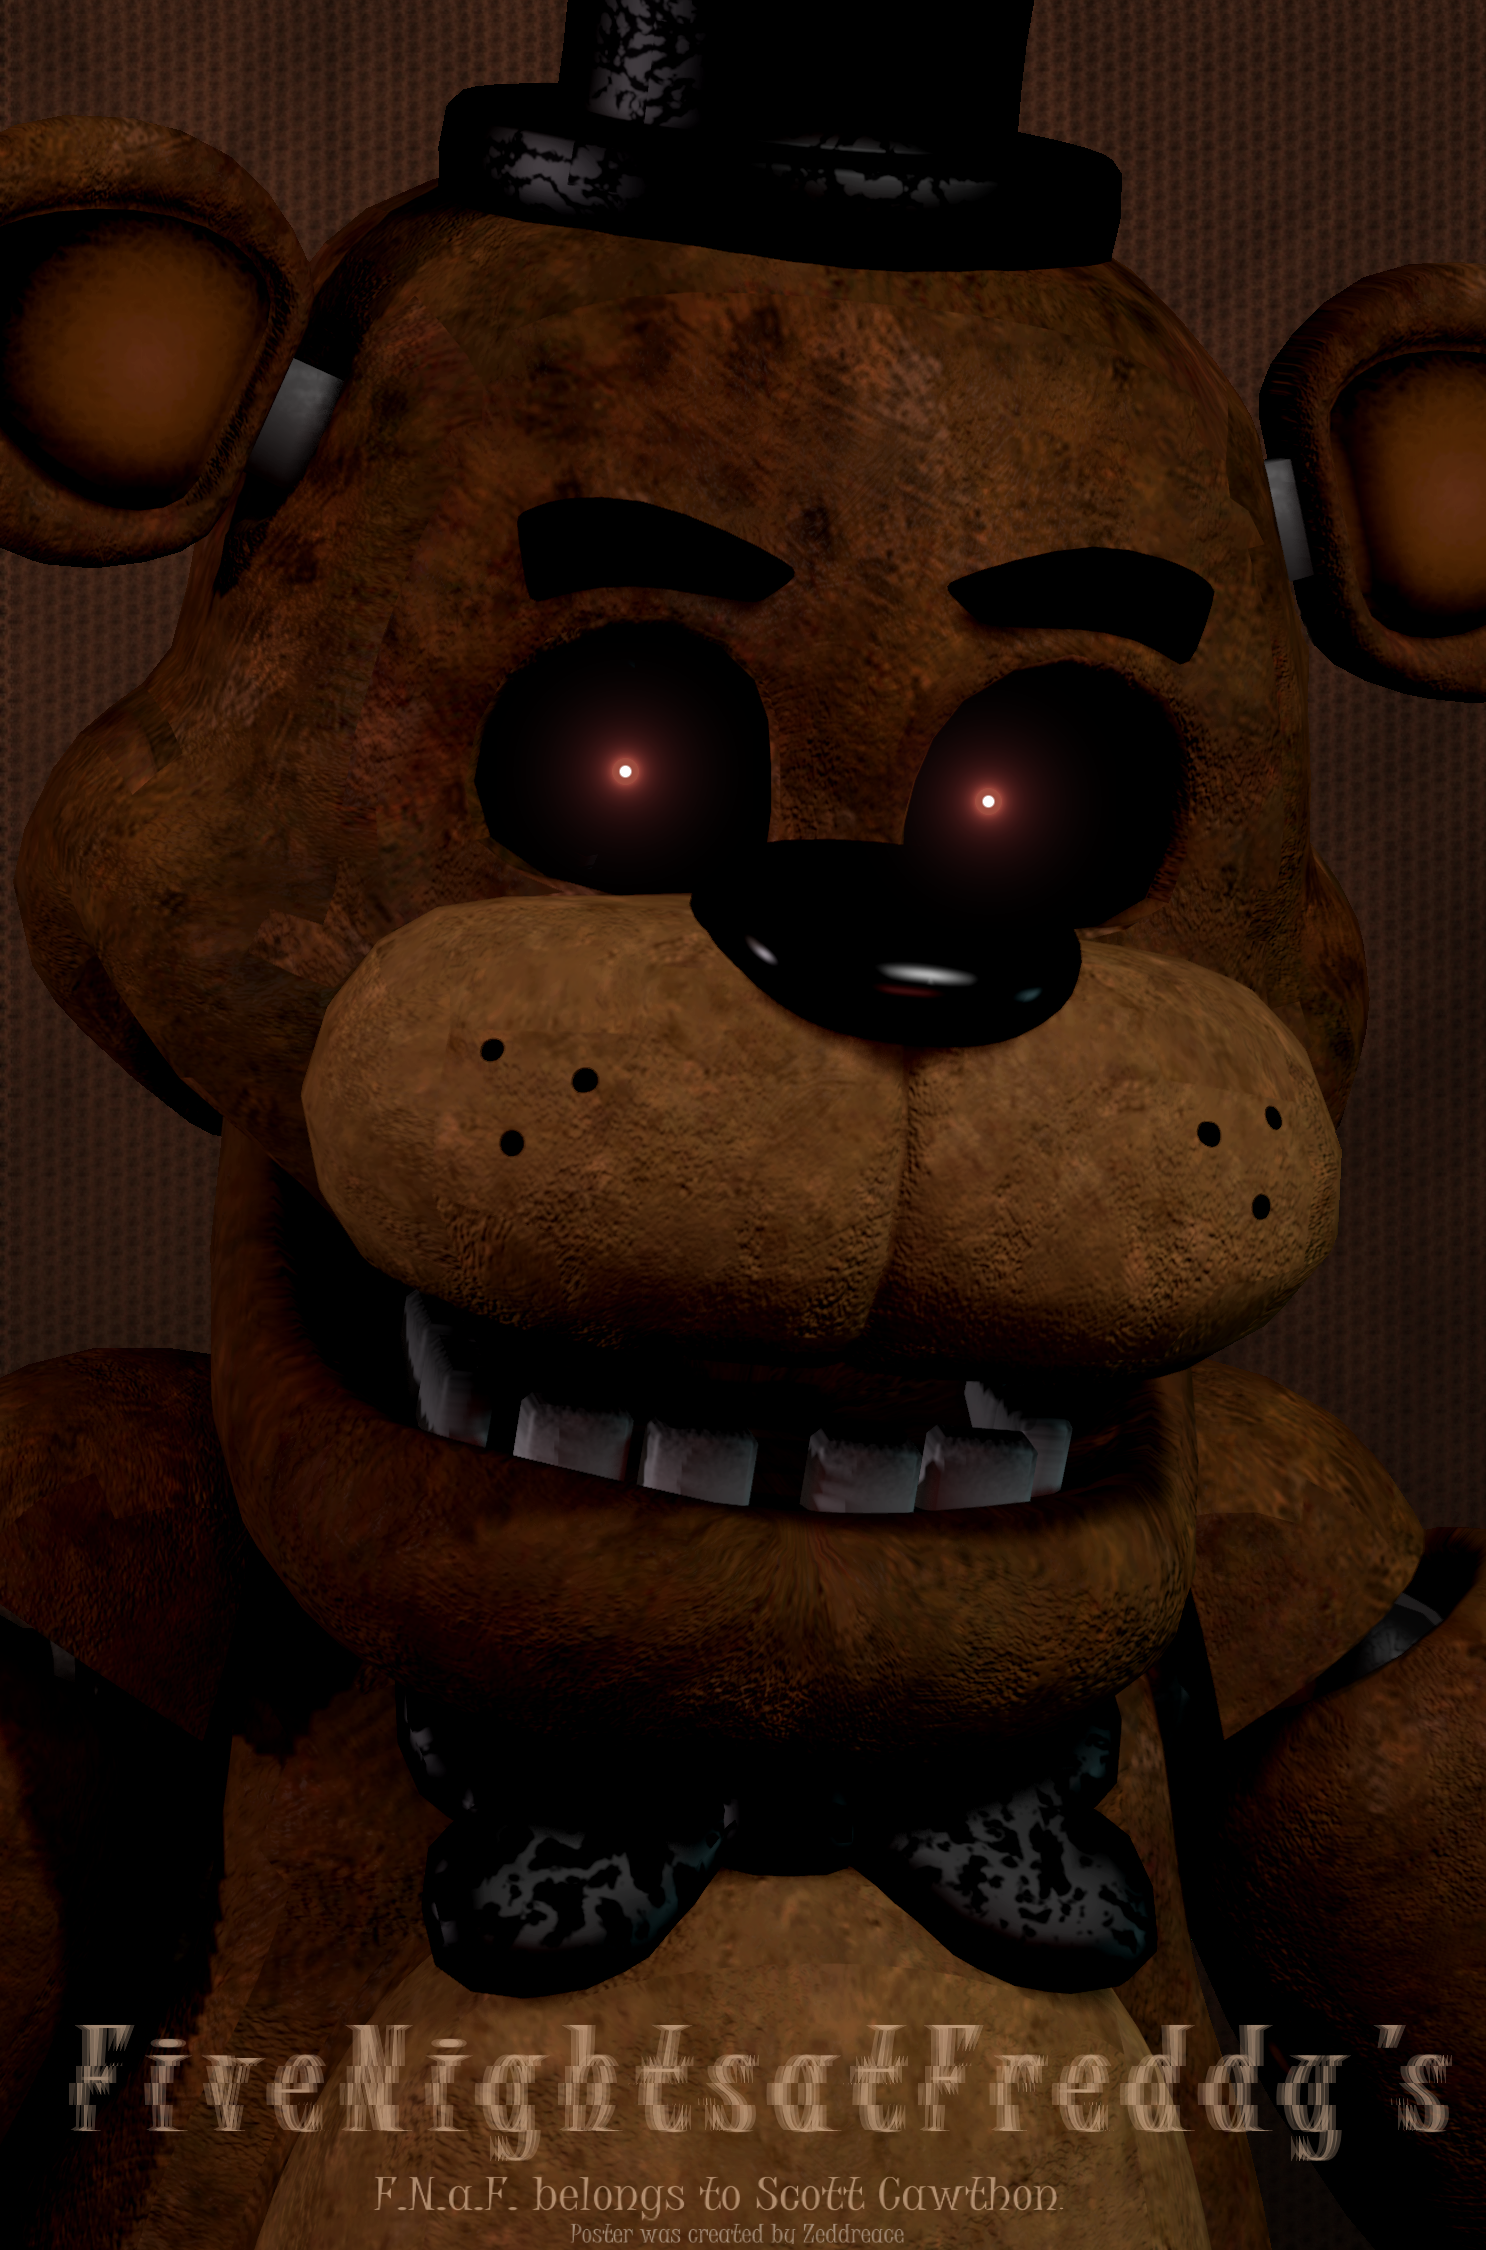 sfm five nights at freddy s poster hd द्वारा zeddreace dawbjfl 1